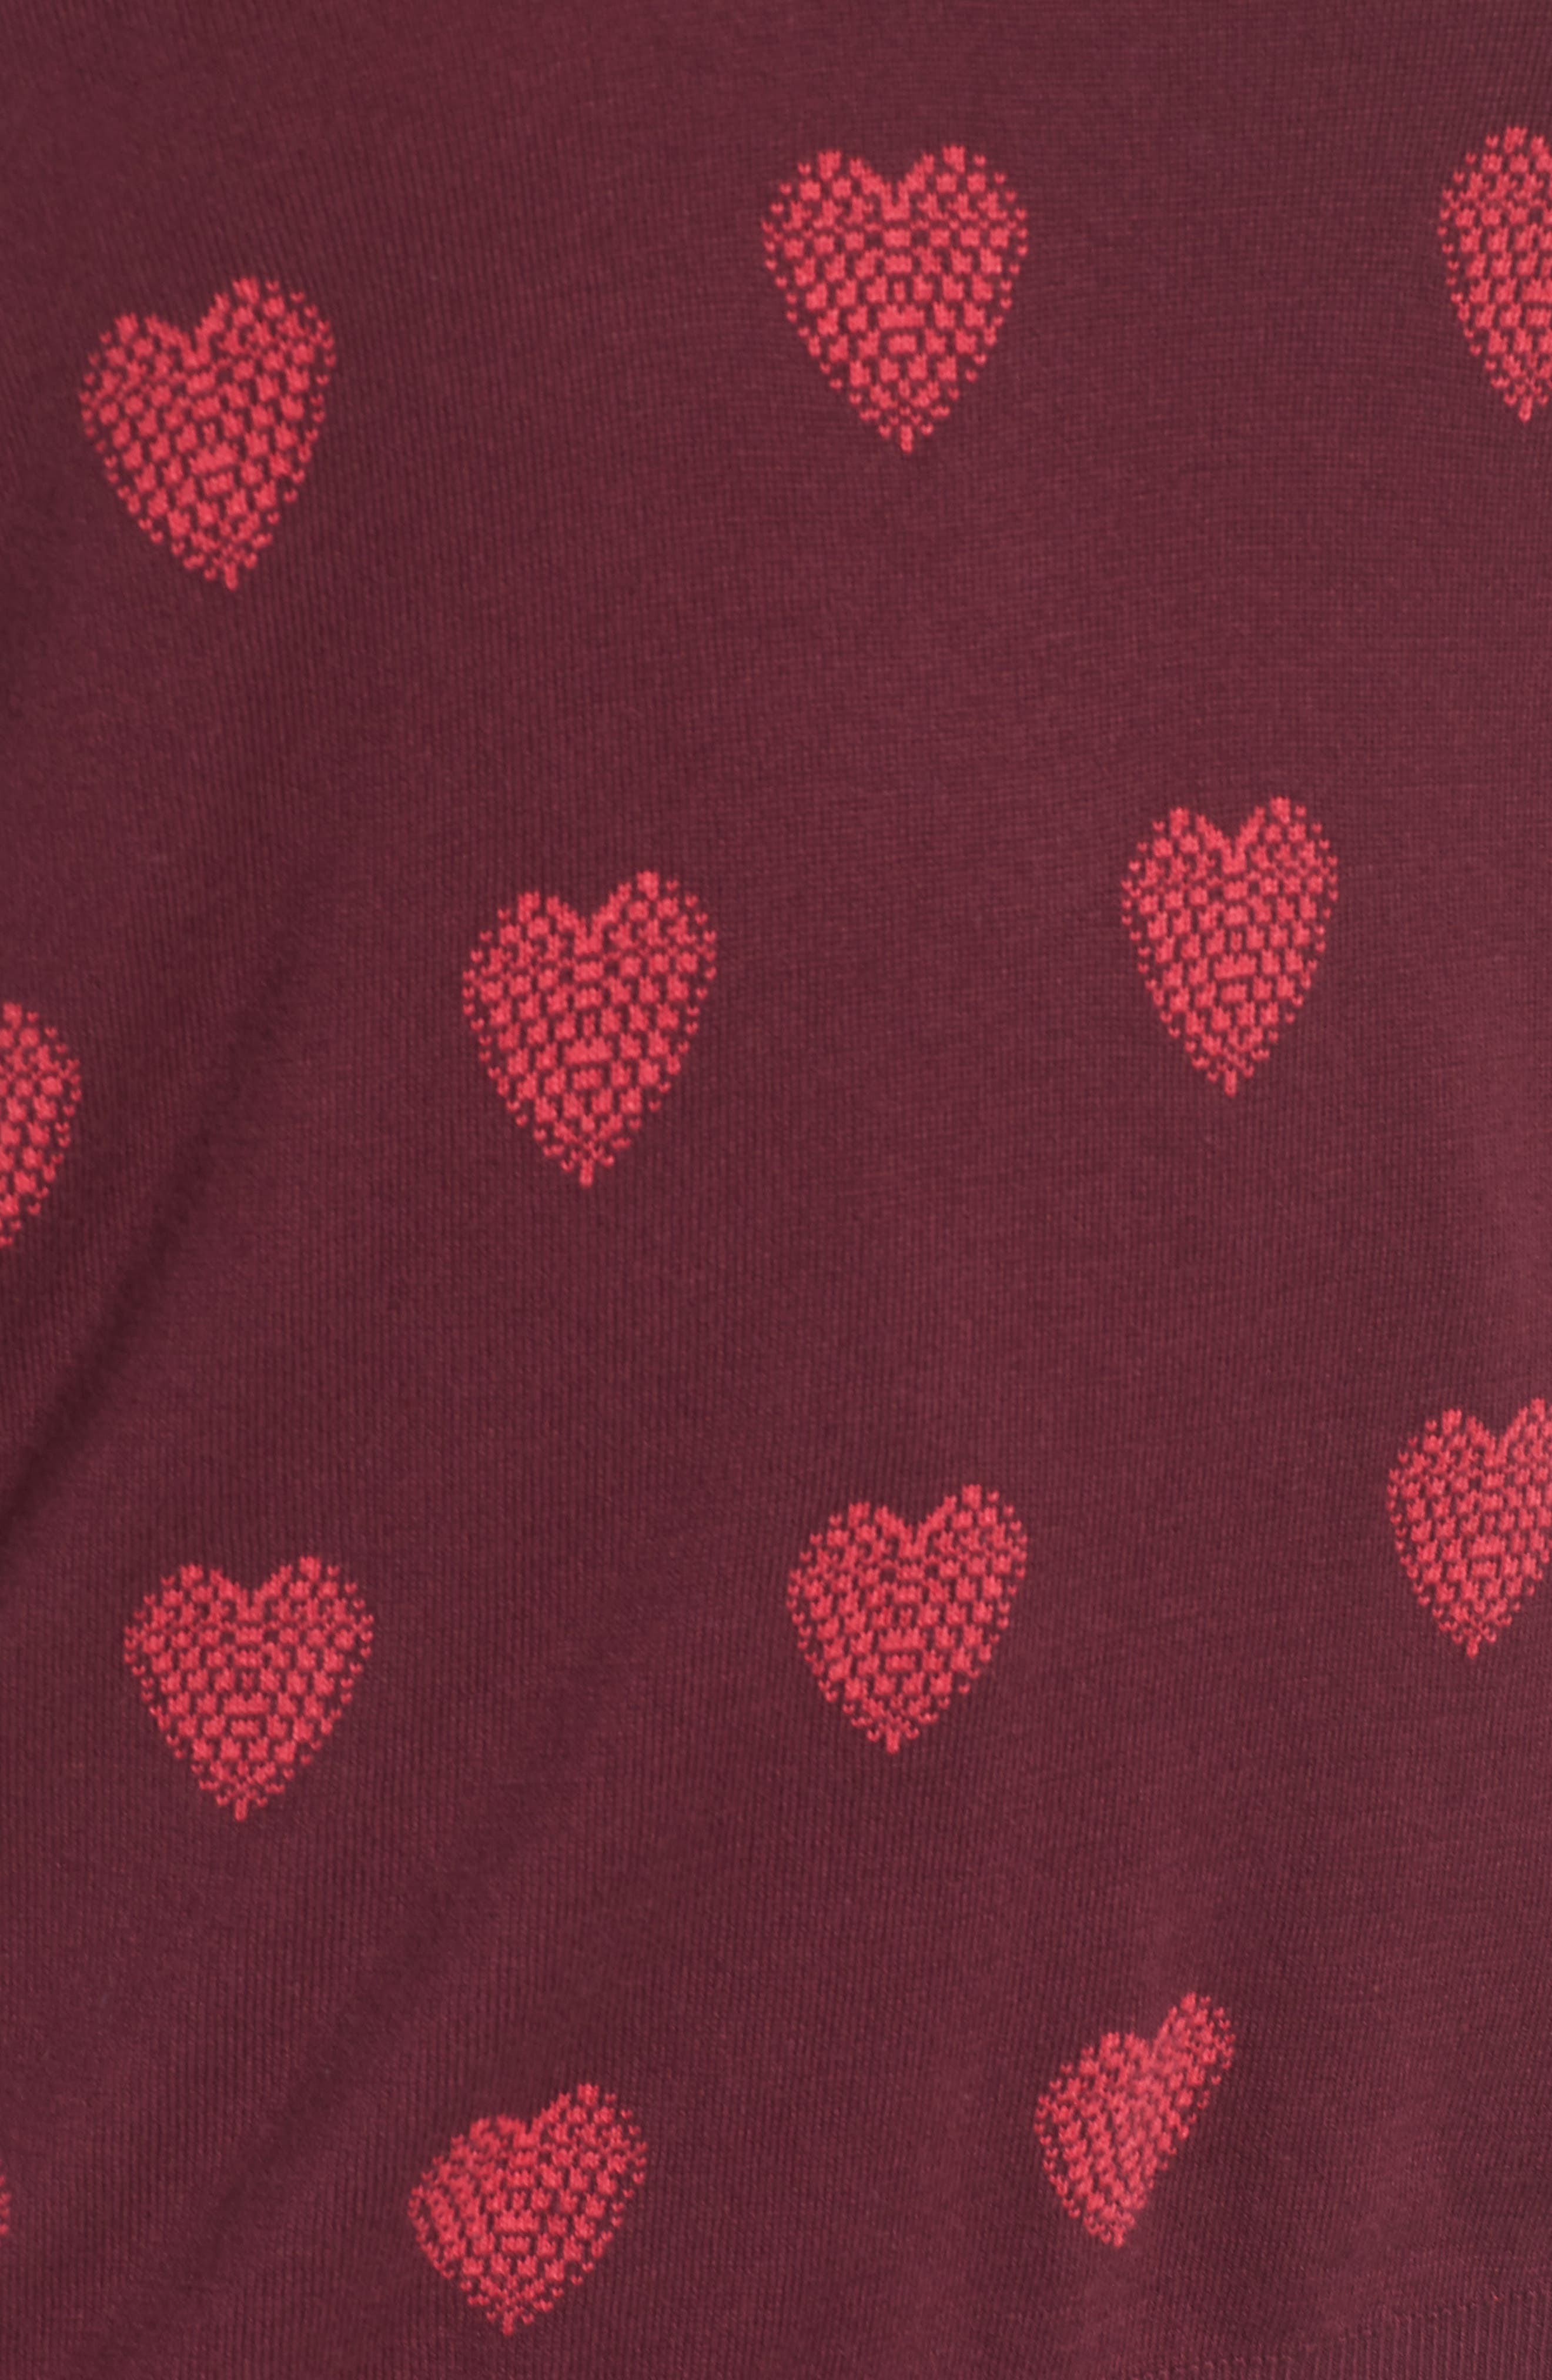 Heart Pattern Cotton Blend Sweater,                             Alternate thumbnail 5, color,                             BURGUNDY- PINK HEART KNIT